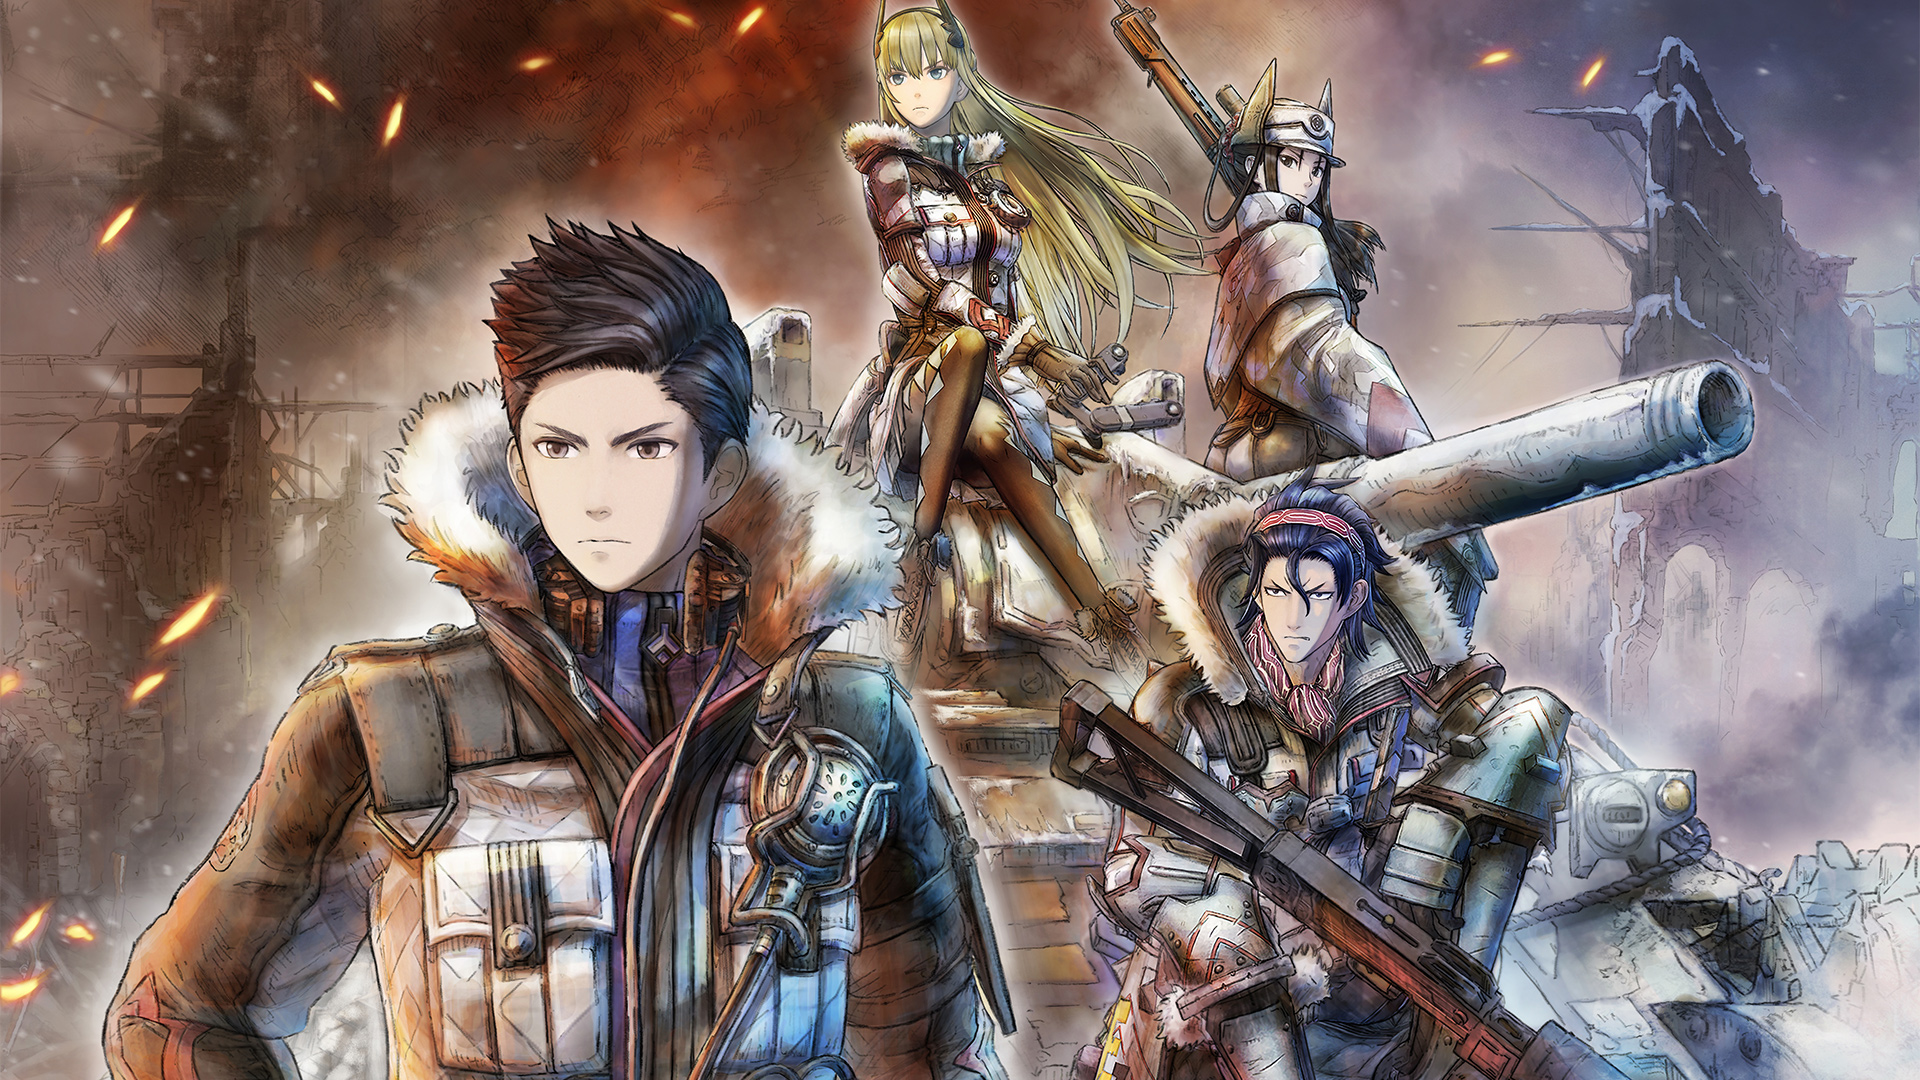 Valkyria Chronicles 4 Updates